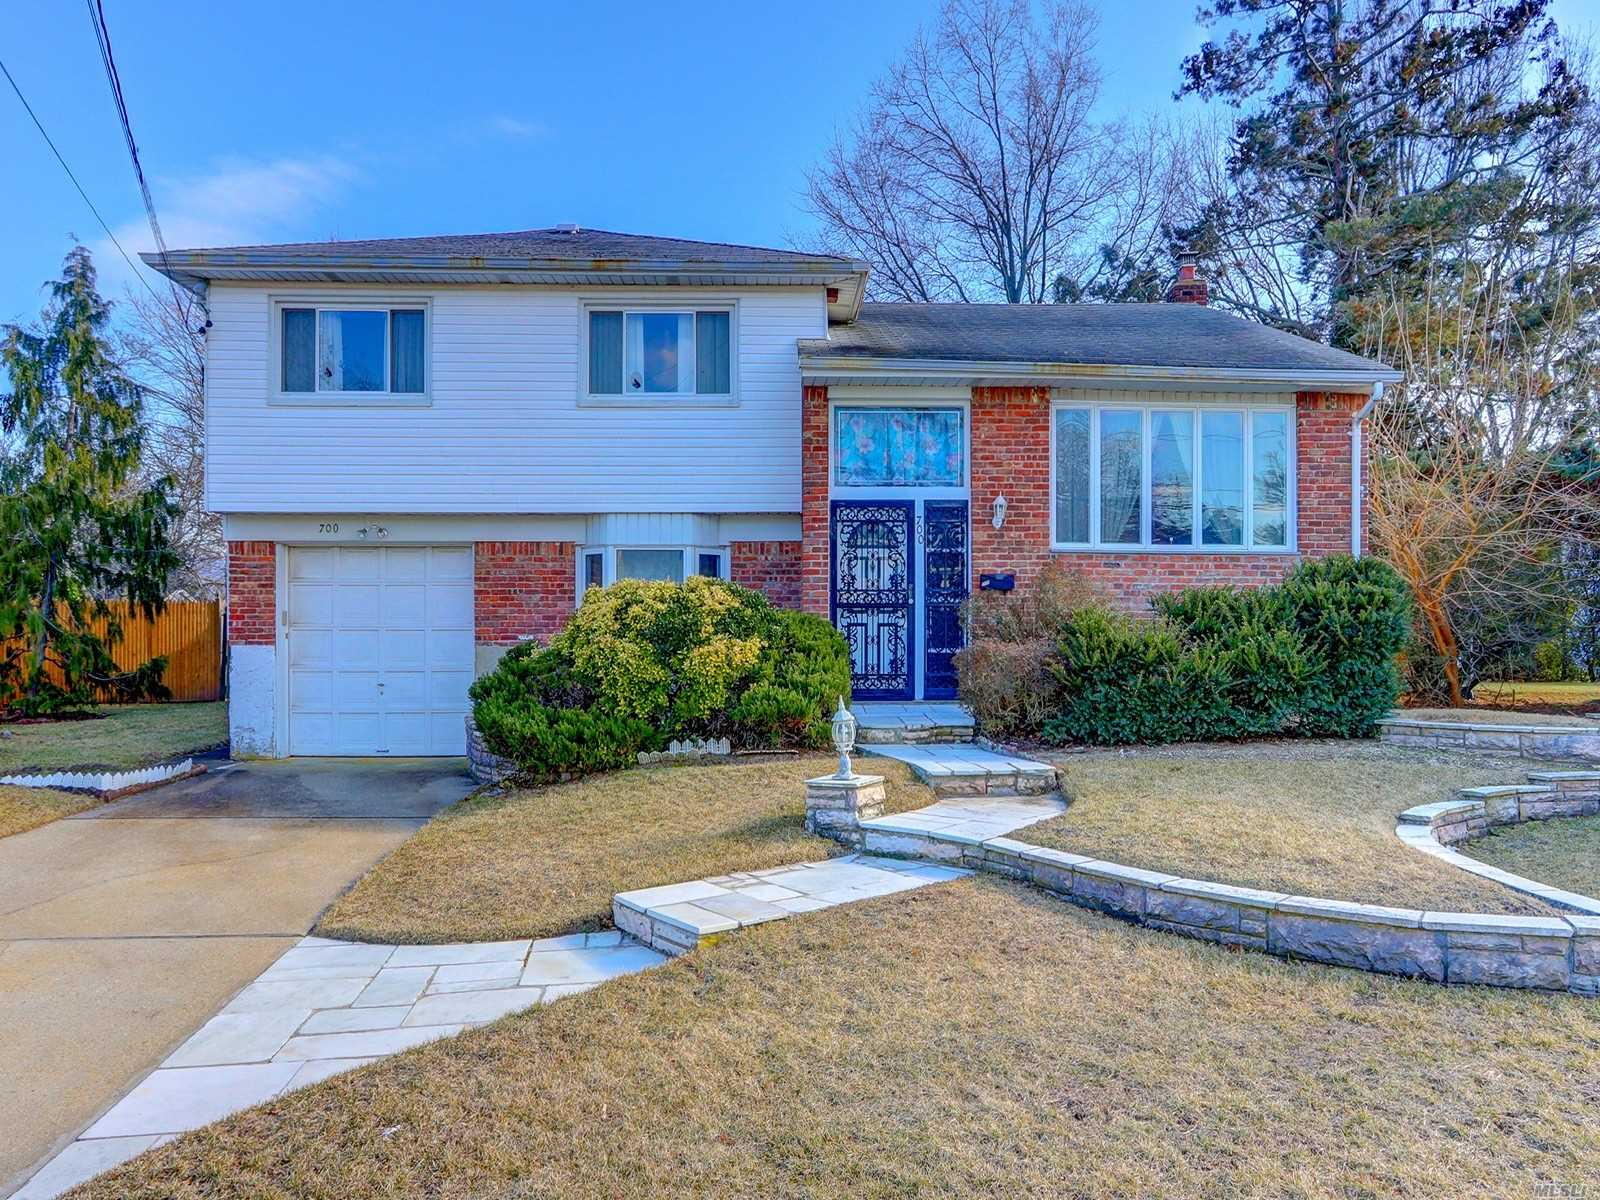 Spacious Split With Not Only A Large Family Room, But A Basement And Office Too! Lr, Dr With Wood Floors, Eik, Master Bedroom W/Full Bath, 2 Additional Bedrooms, And 1.5 Additional Baths Complete The Package On 43 X 140 Property. Pool Sized Yard Awaiting Buyer To Make This Their Own!